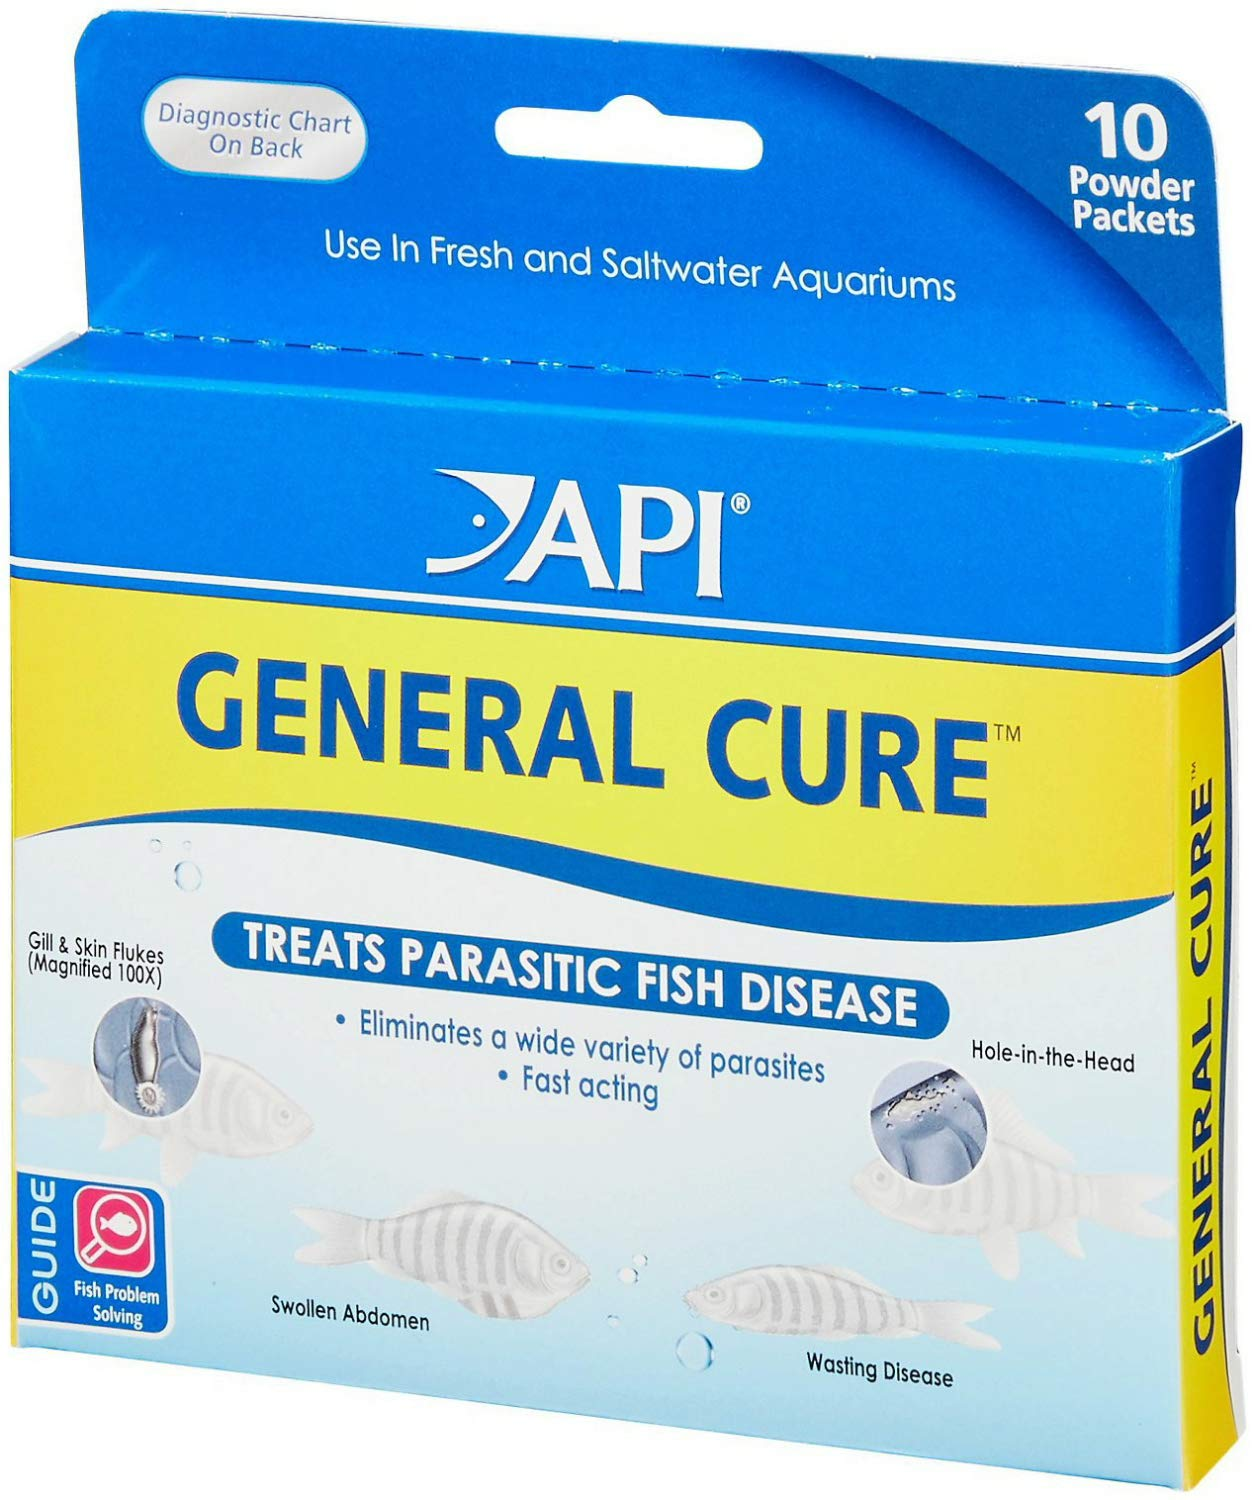 API General Cure Powder Packets, 60ct (6 x 10ct) by API